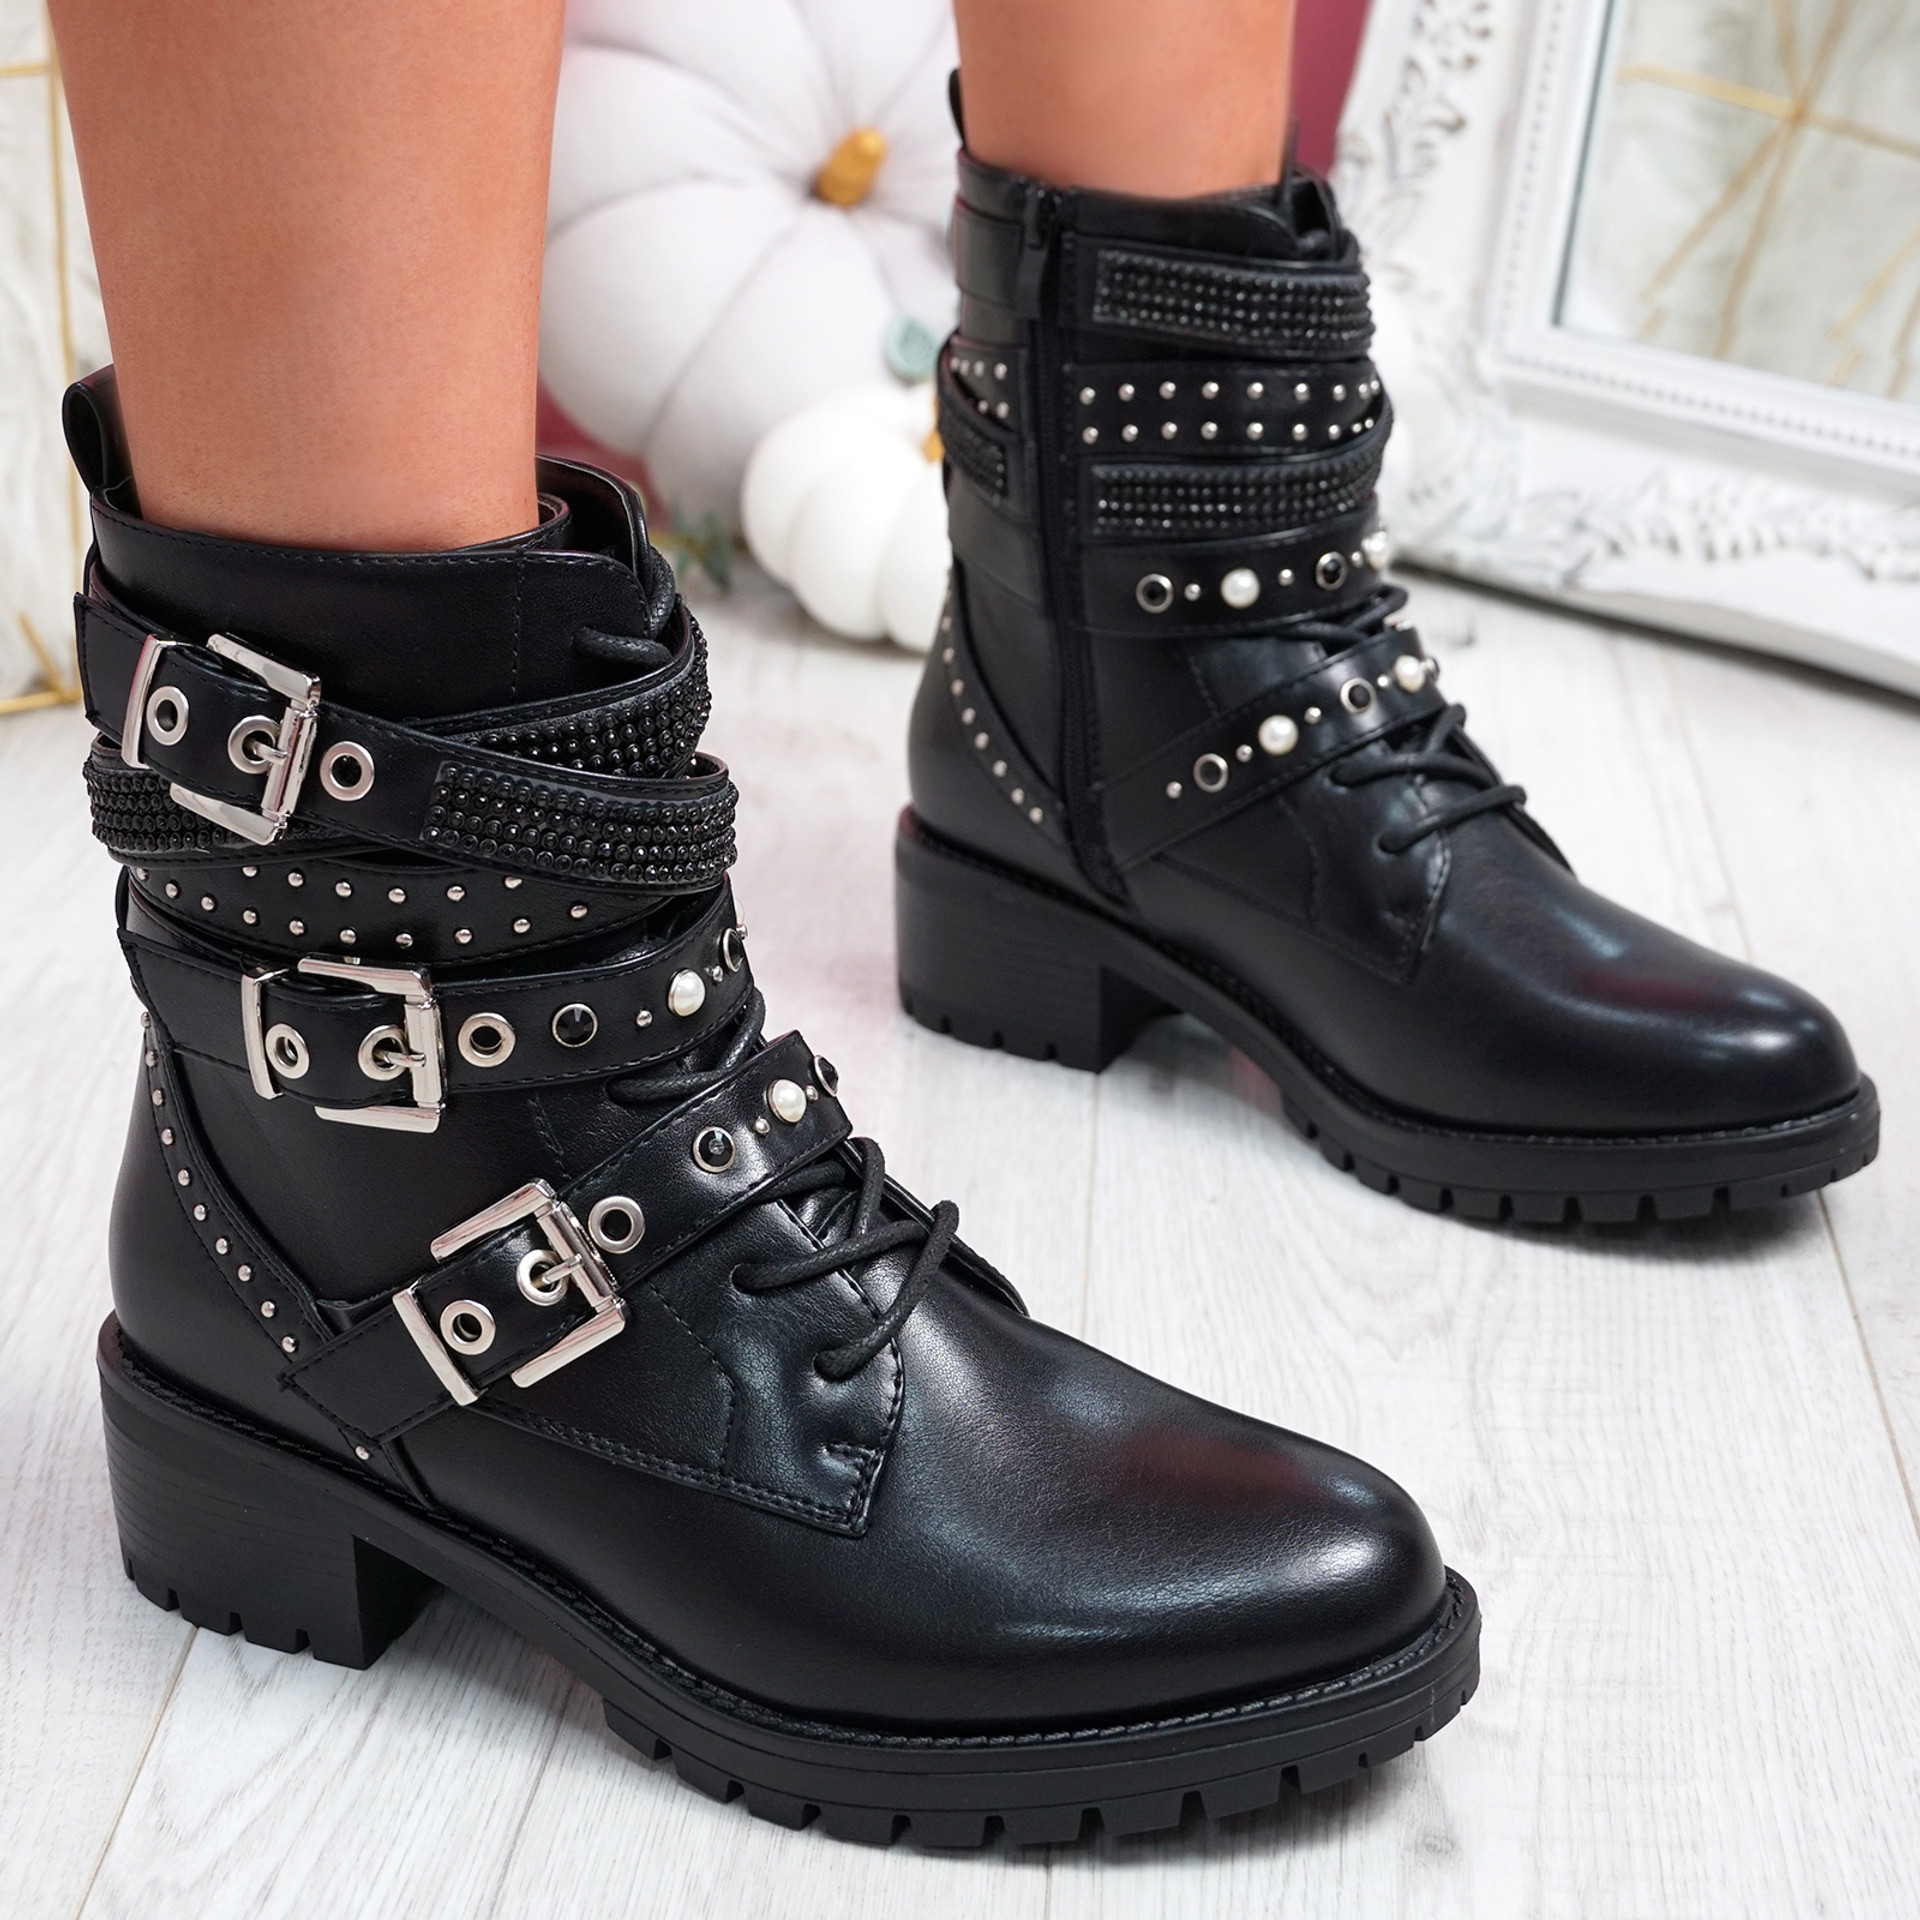 Lobbe Black Pu Ankle Boots